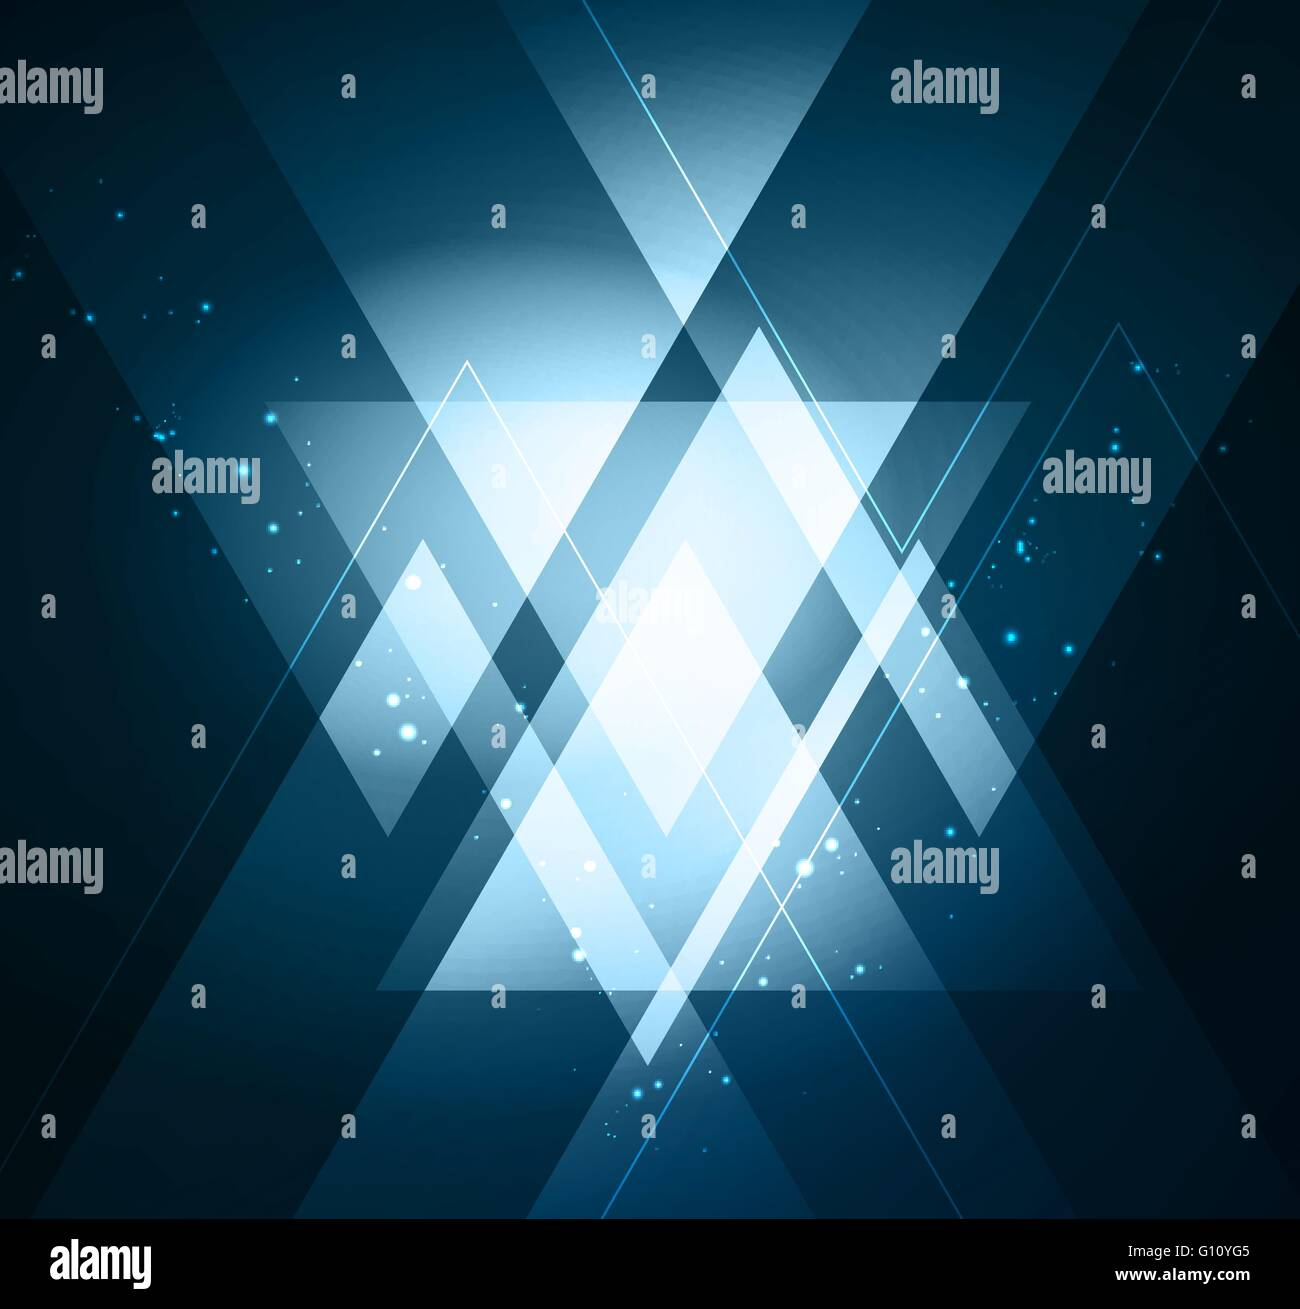 Elegant Geometric Background With Shiny Blue Triangles Vector Stock